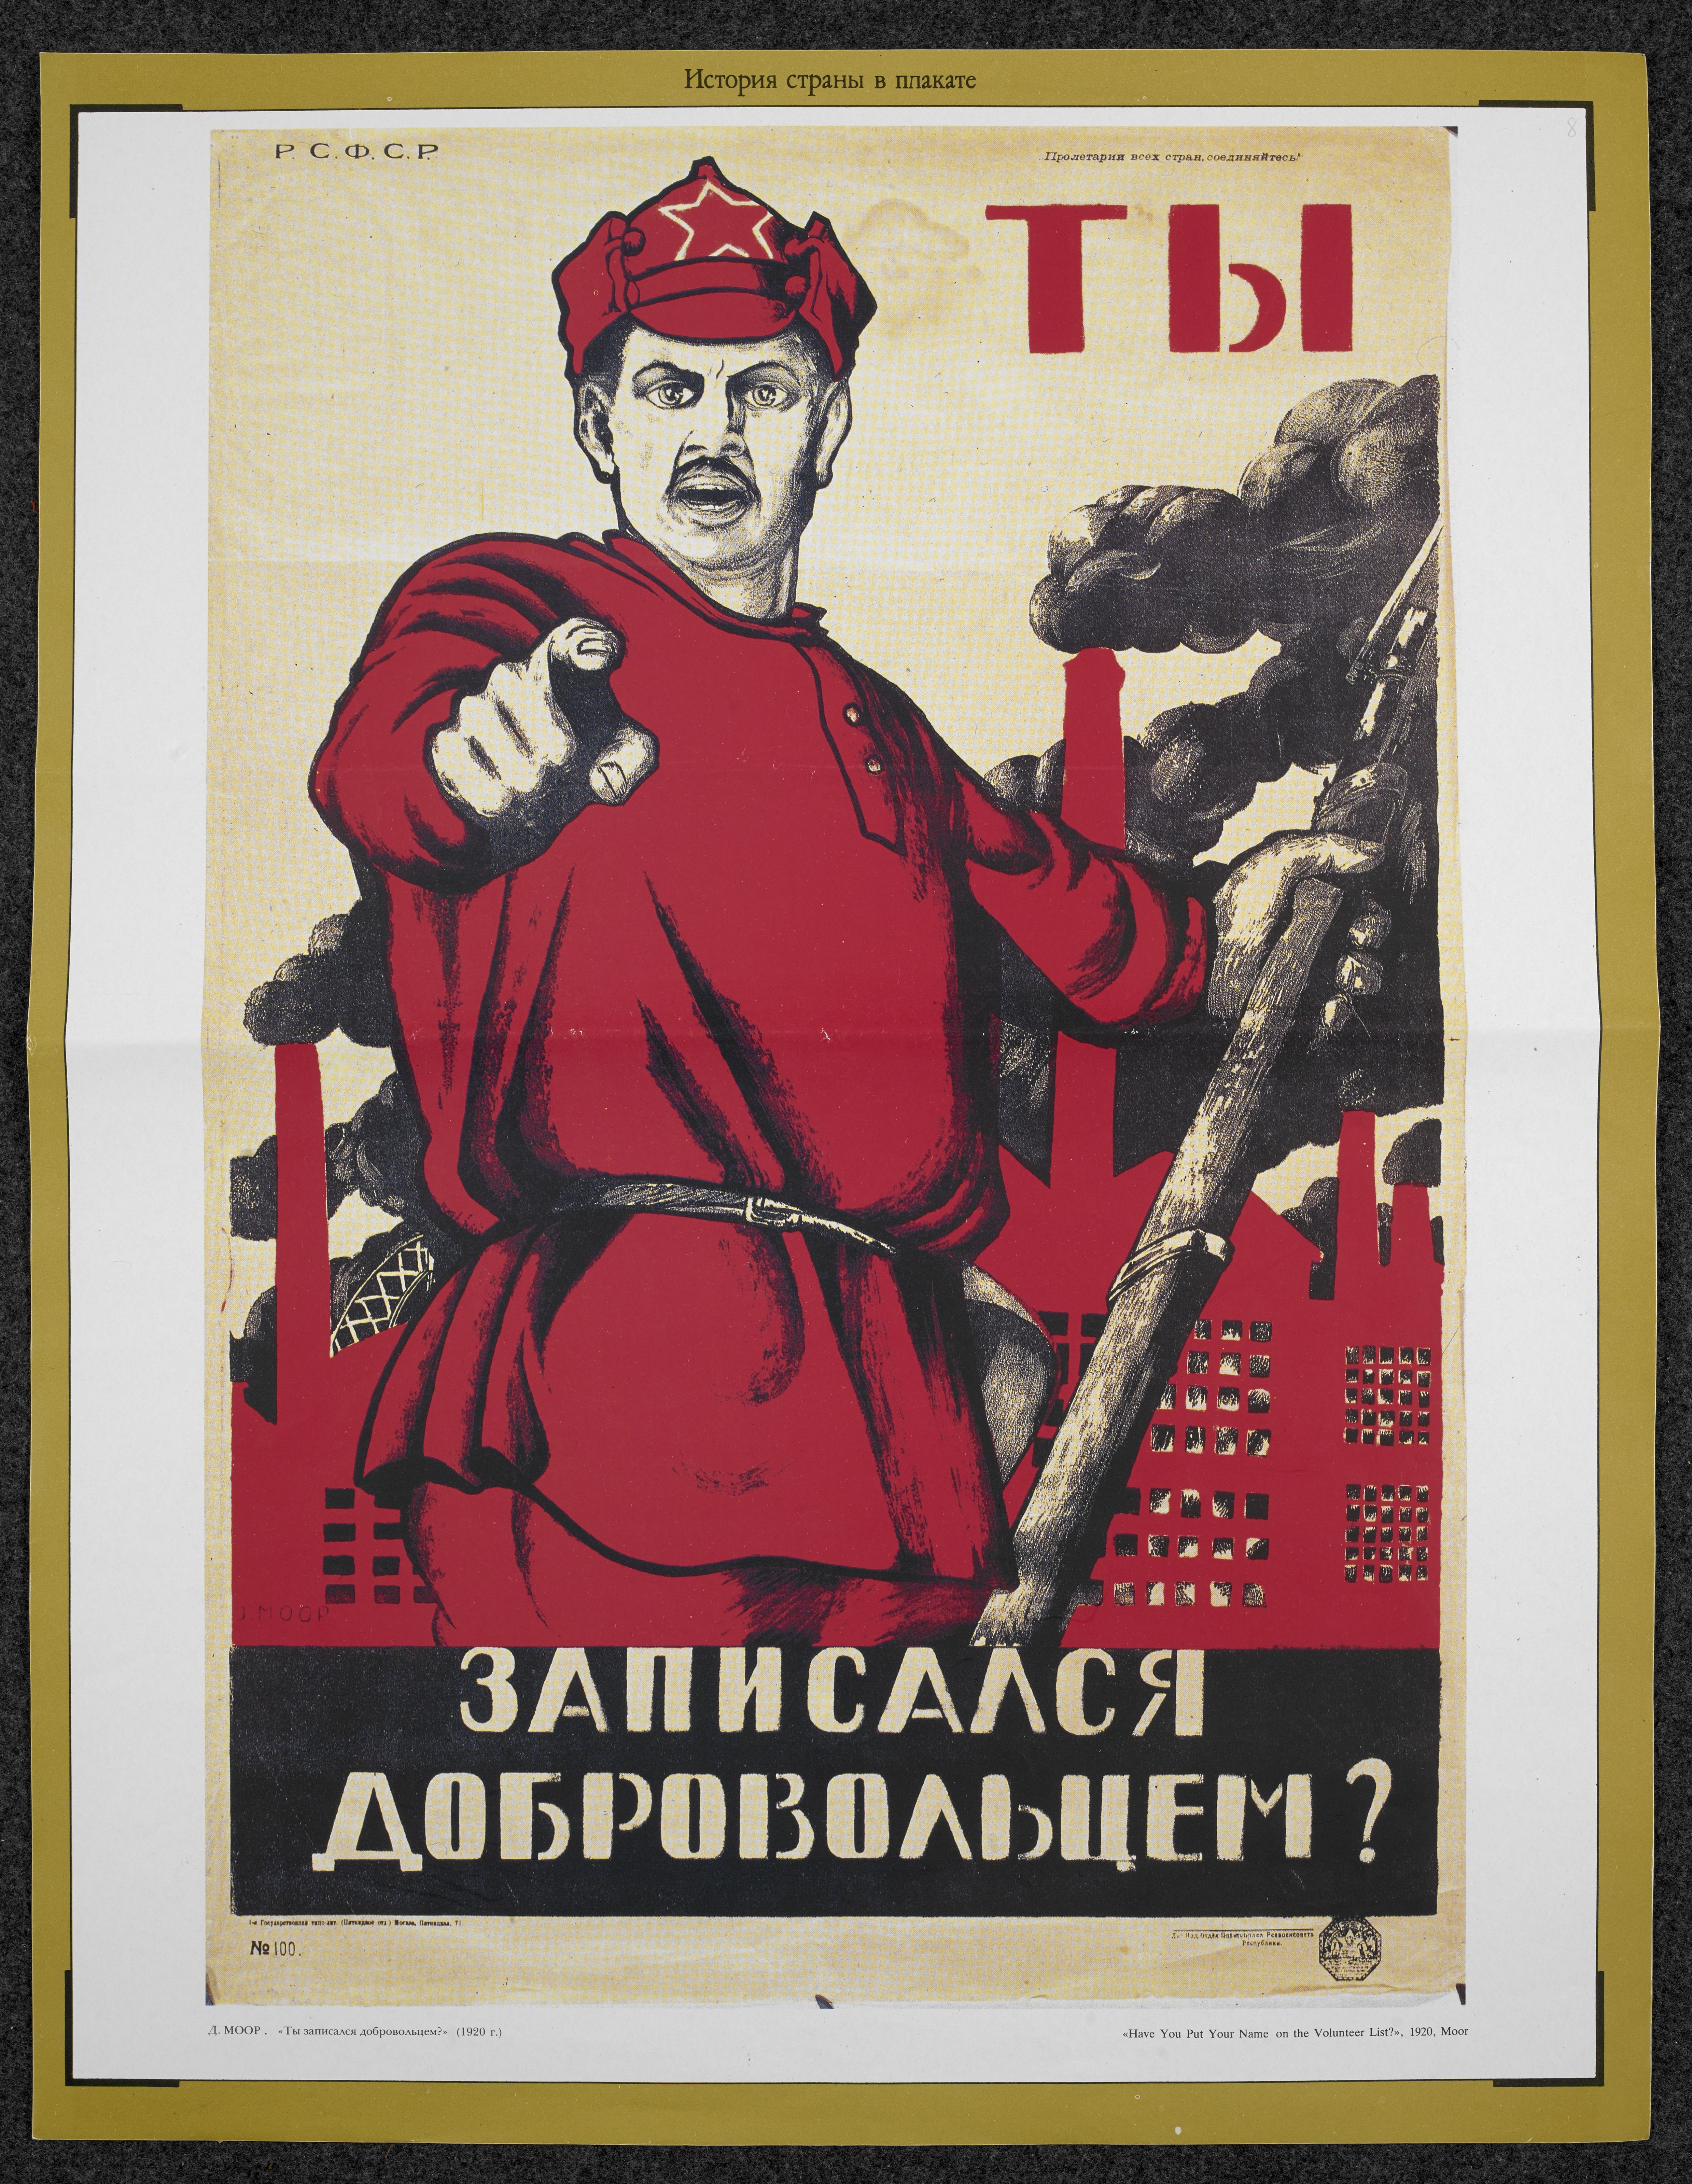 Red Army poster (c) British Library